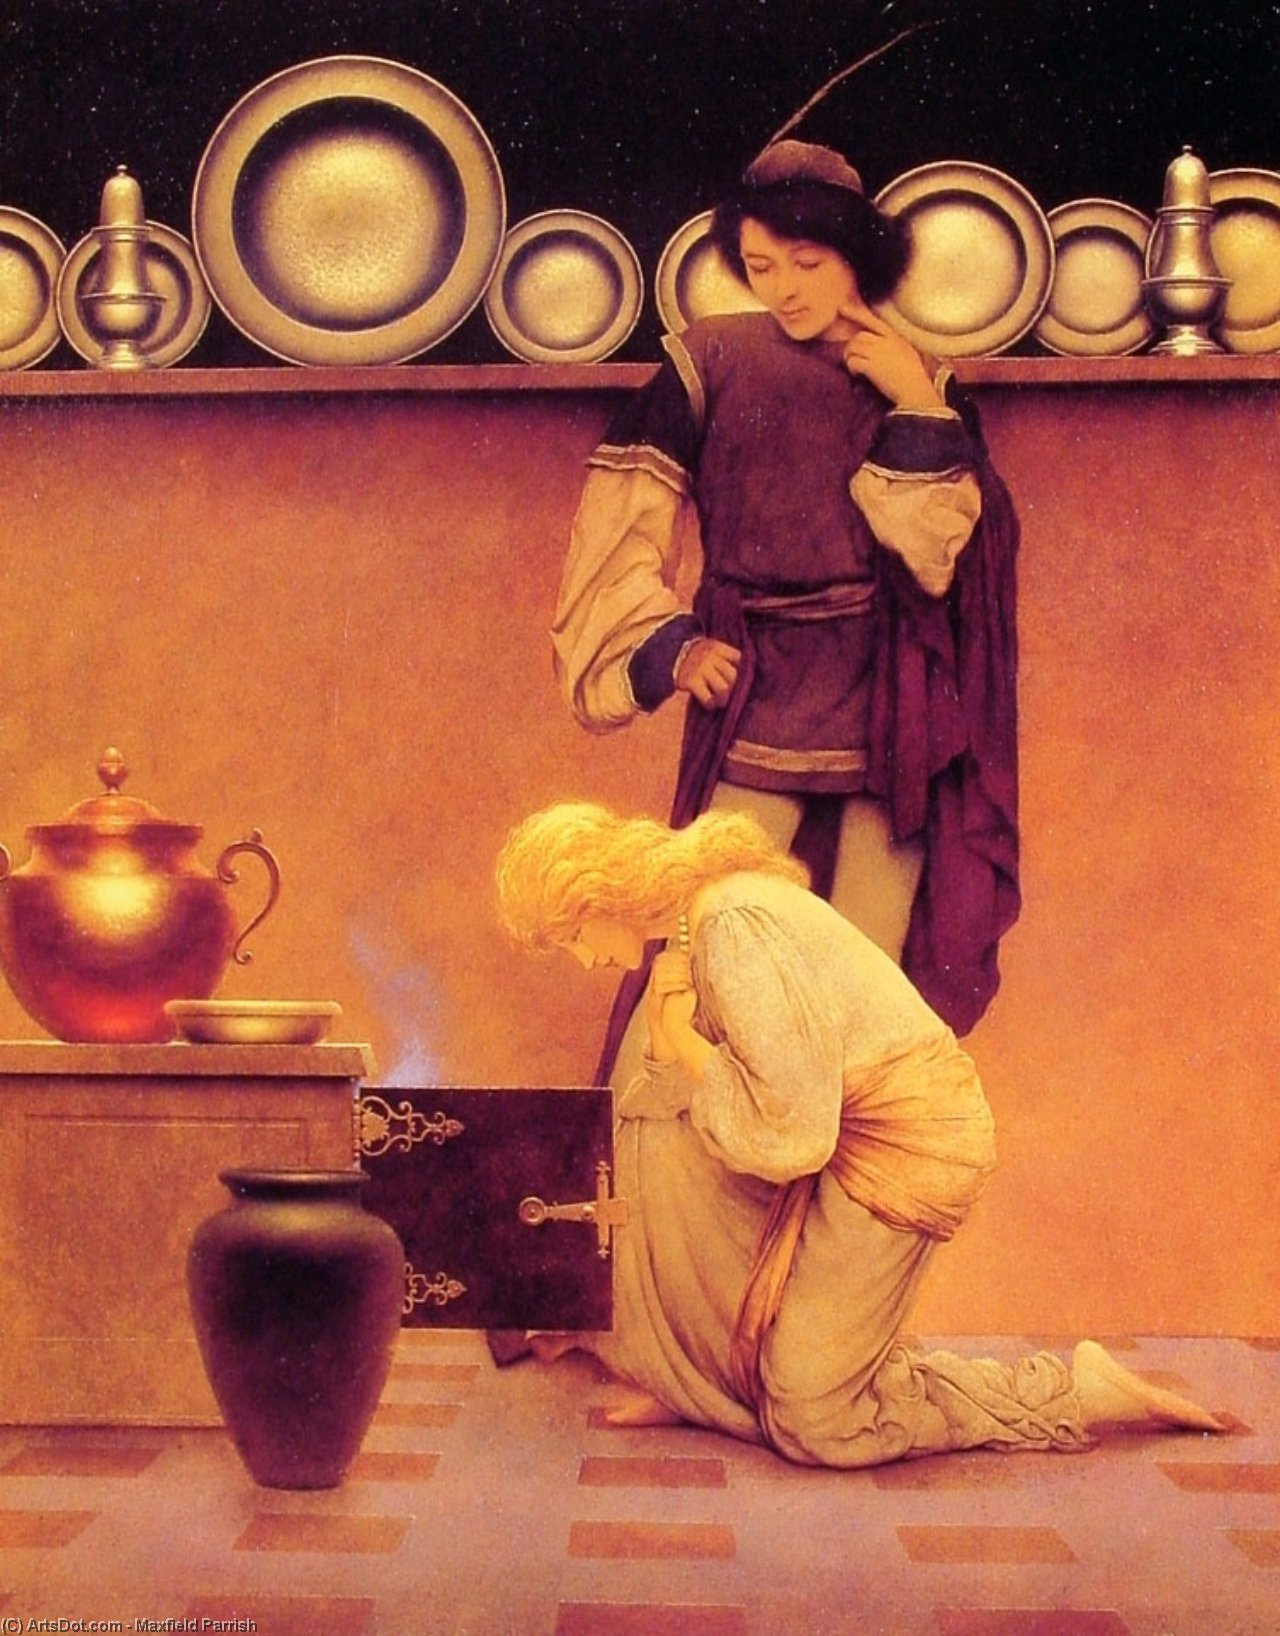 Maxfield_parrish-lady_violetta_and_the_knave.Jpg